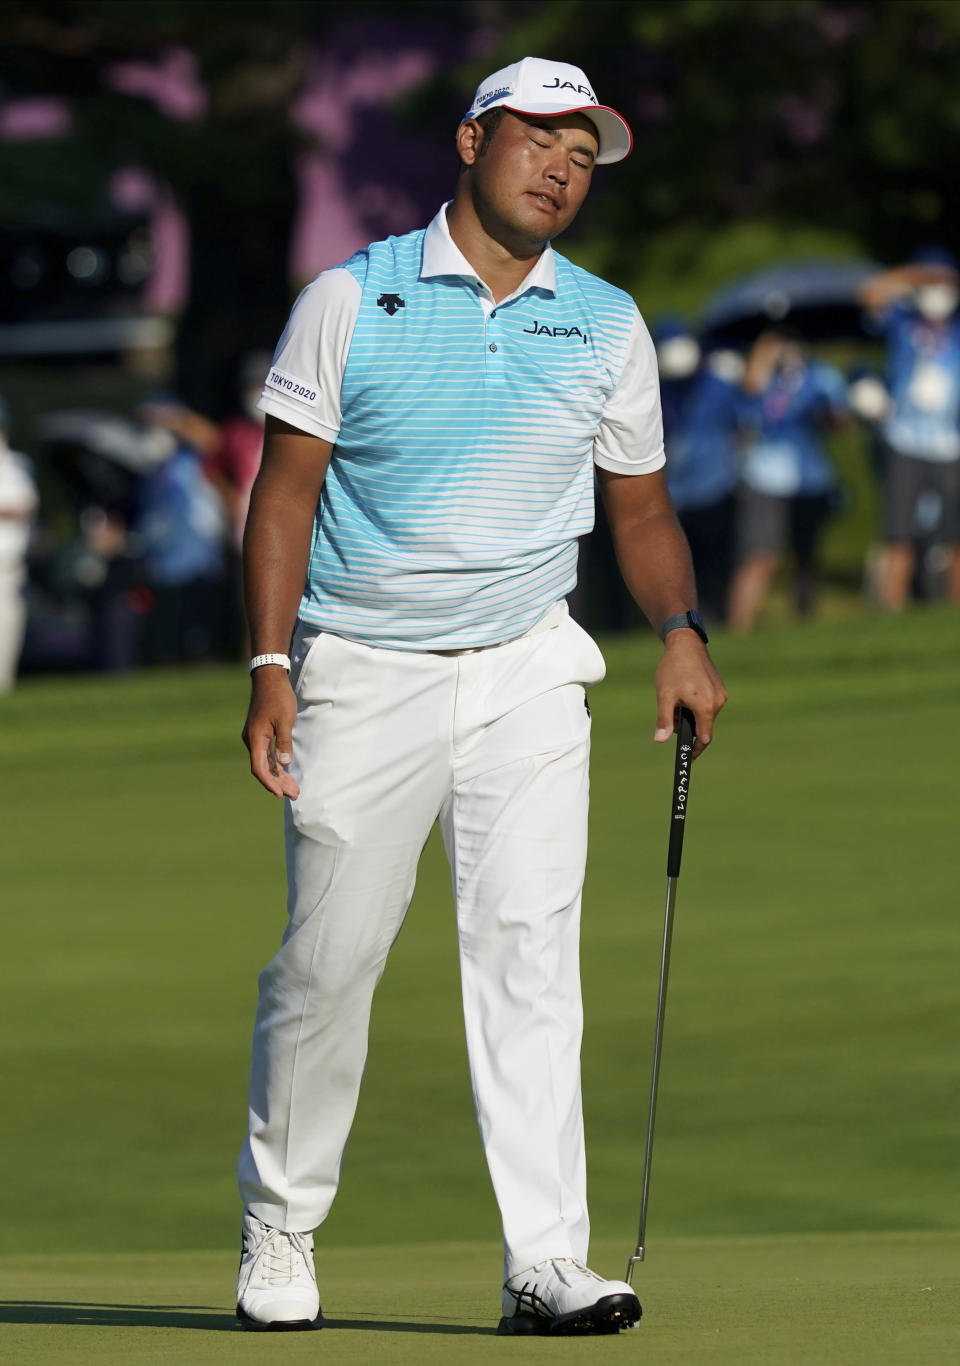 Hideki Matsuyama of Japan reacts after missing a putt during a bronze medal playoff of the men's golf event at the 2020 Summer Olympics on Sunday, Aug. 1, 2021, in Kawagoe, Japan. (AP Photo/Matt York)